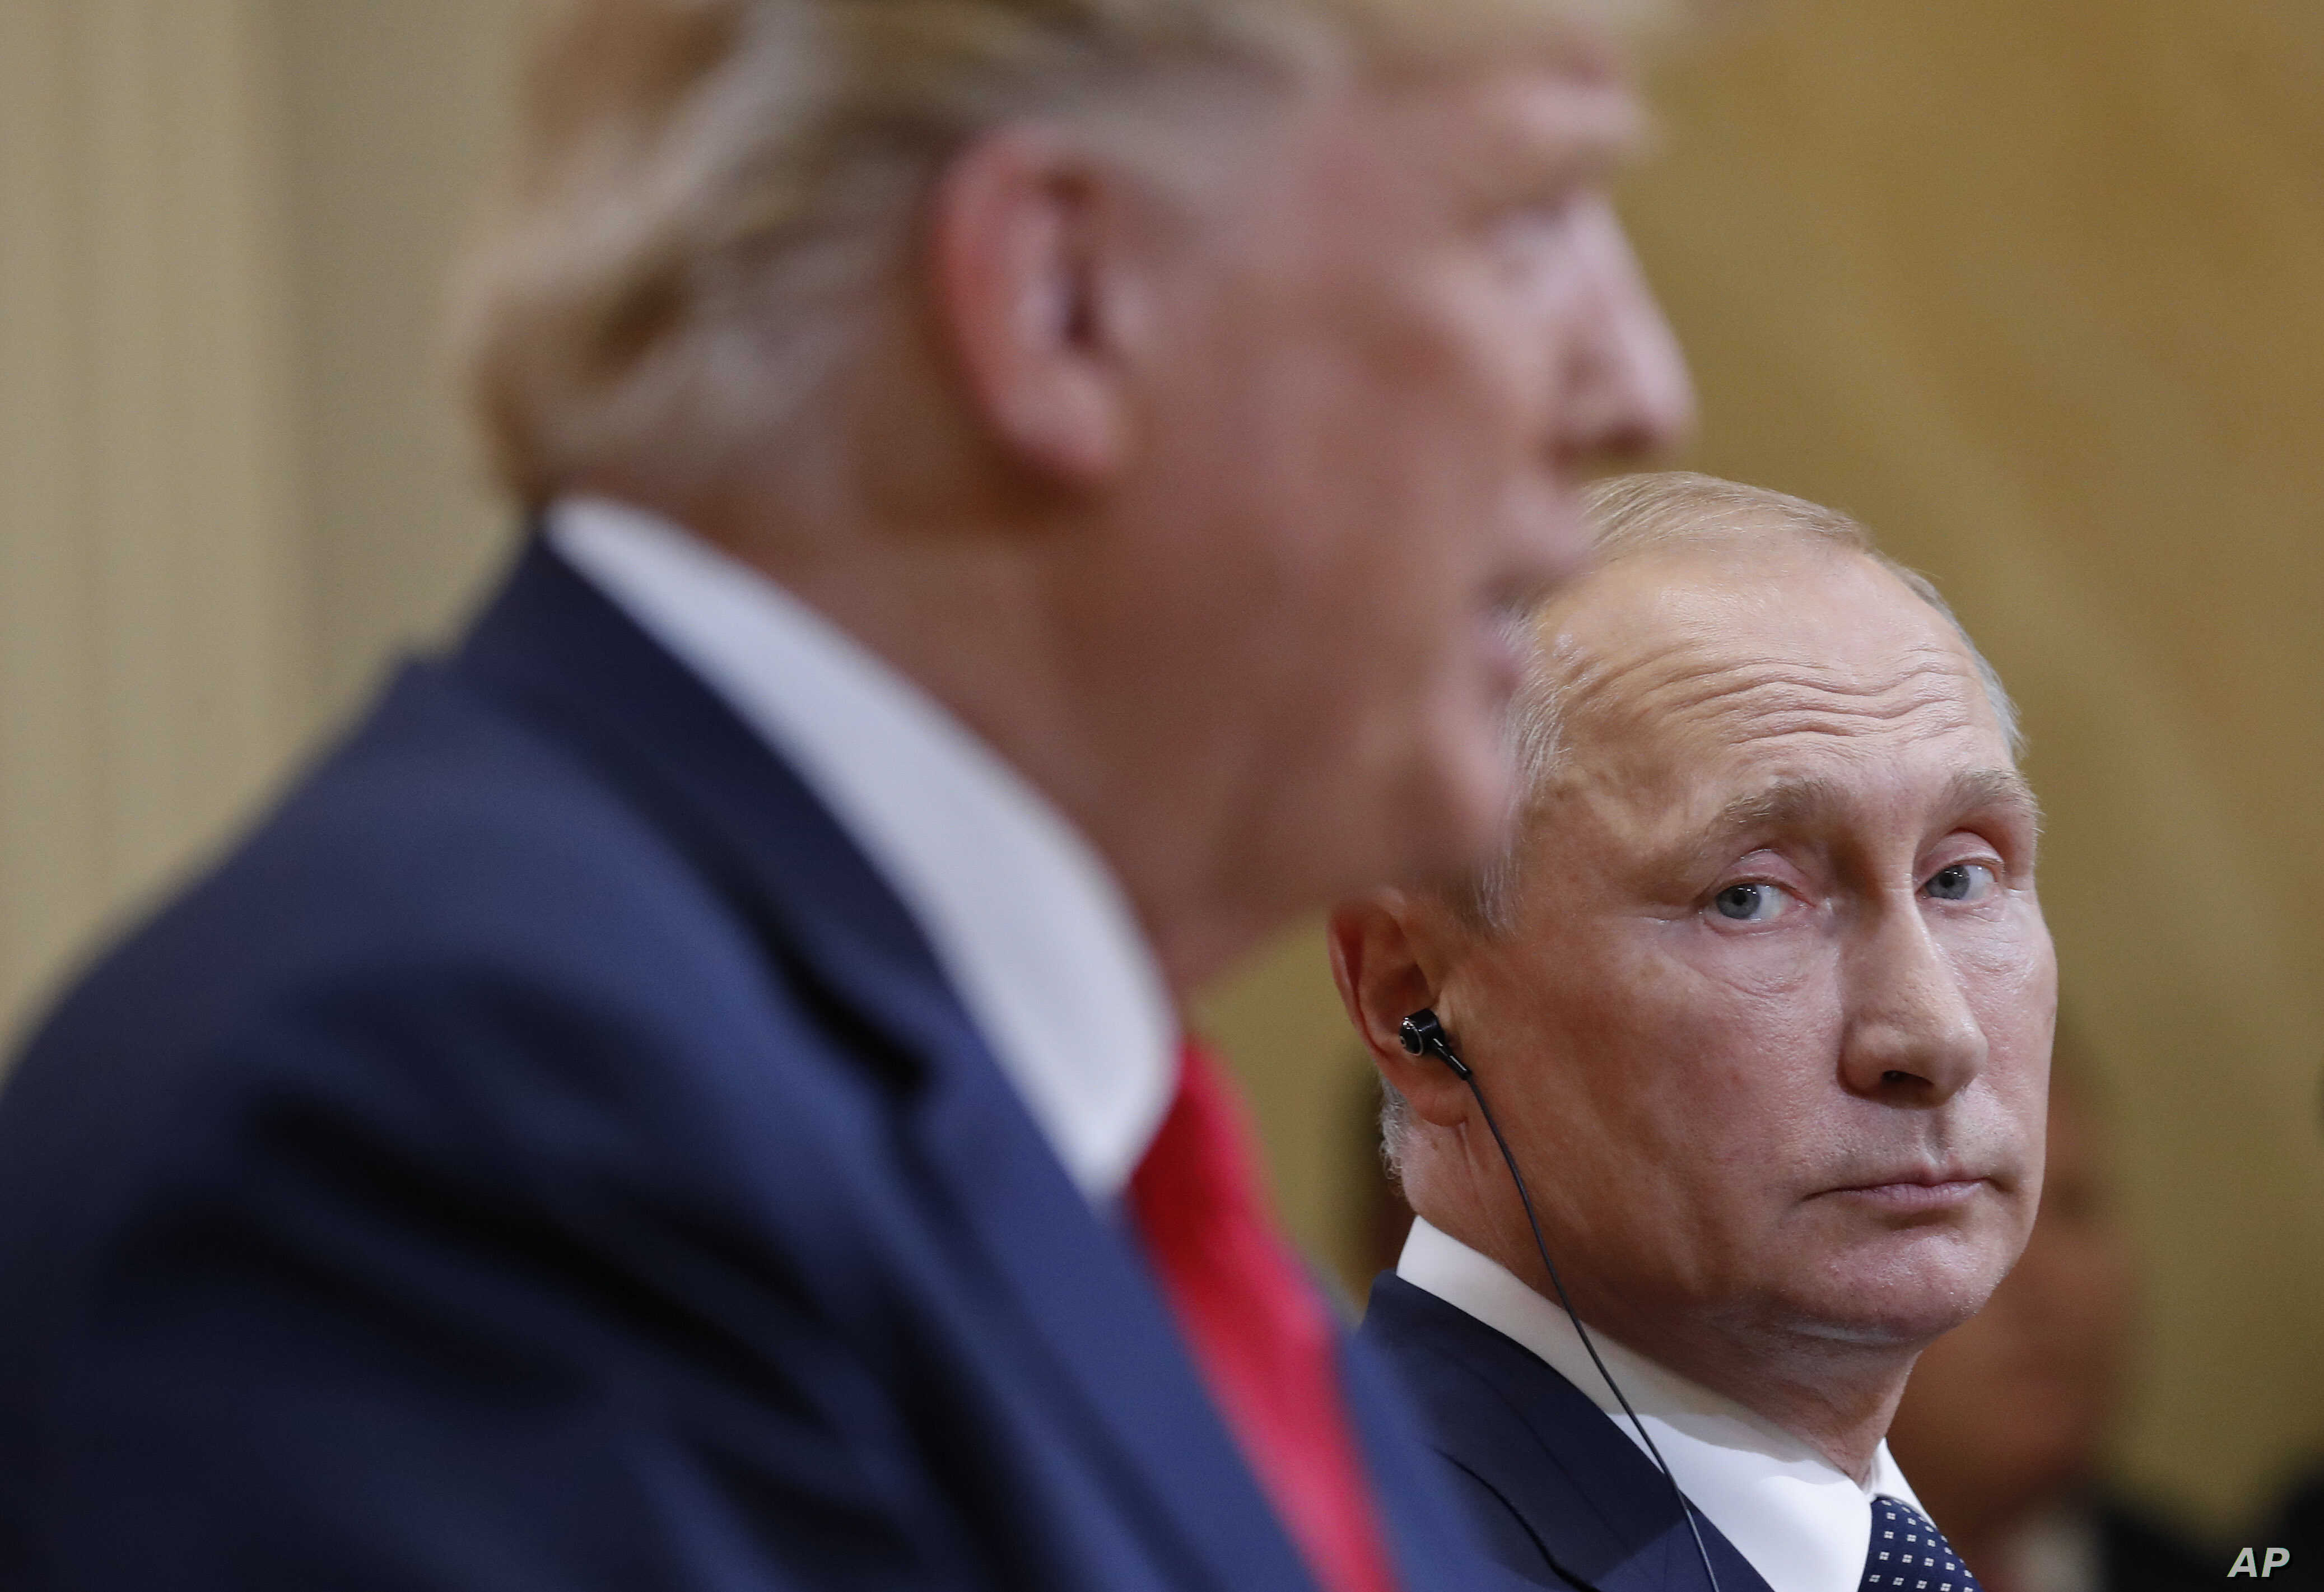 Russian President Vladimir Putin, right, looks over towards U.S. President Donald Trump, left, as Trump speaks during their joint news conference at the Presidential Palace in Helsinki, Finland, July 16, 2018.